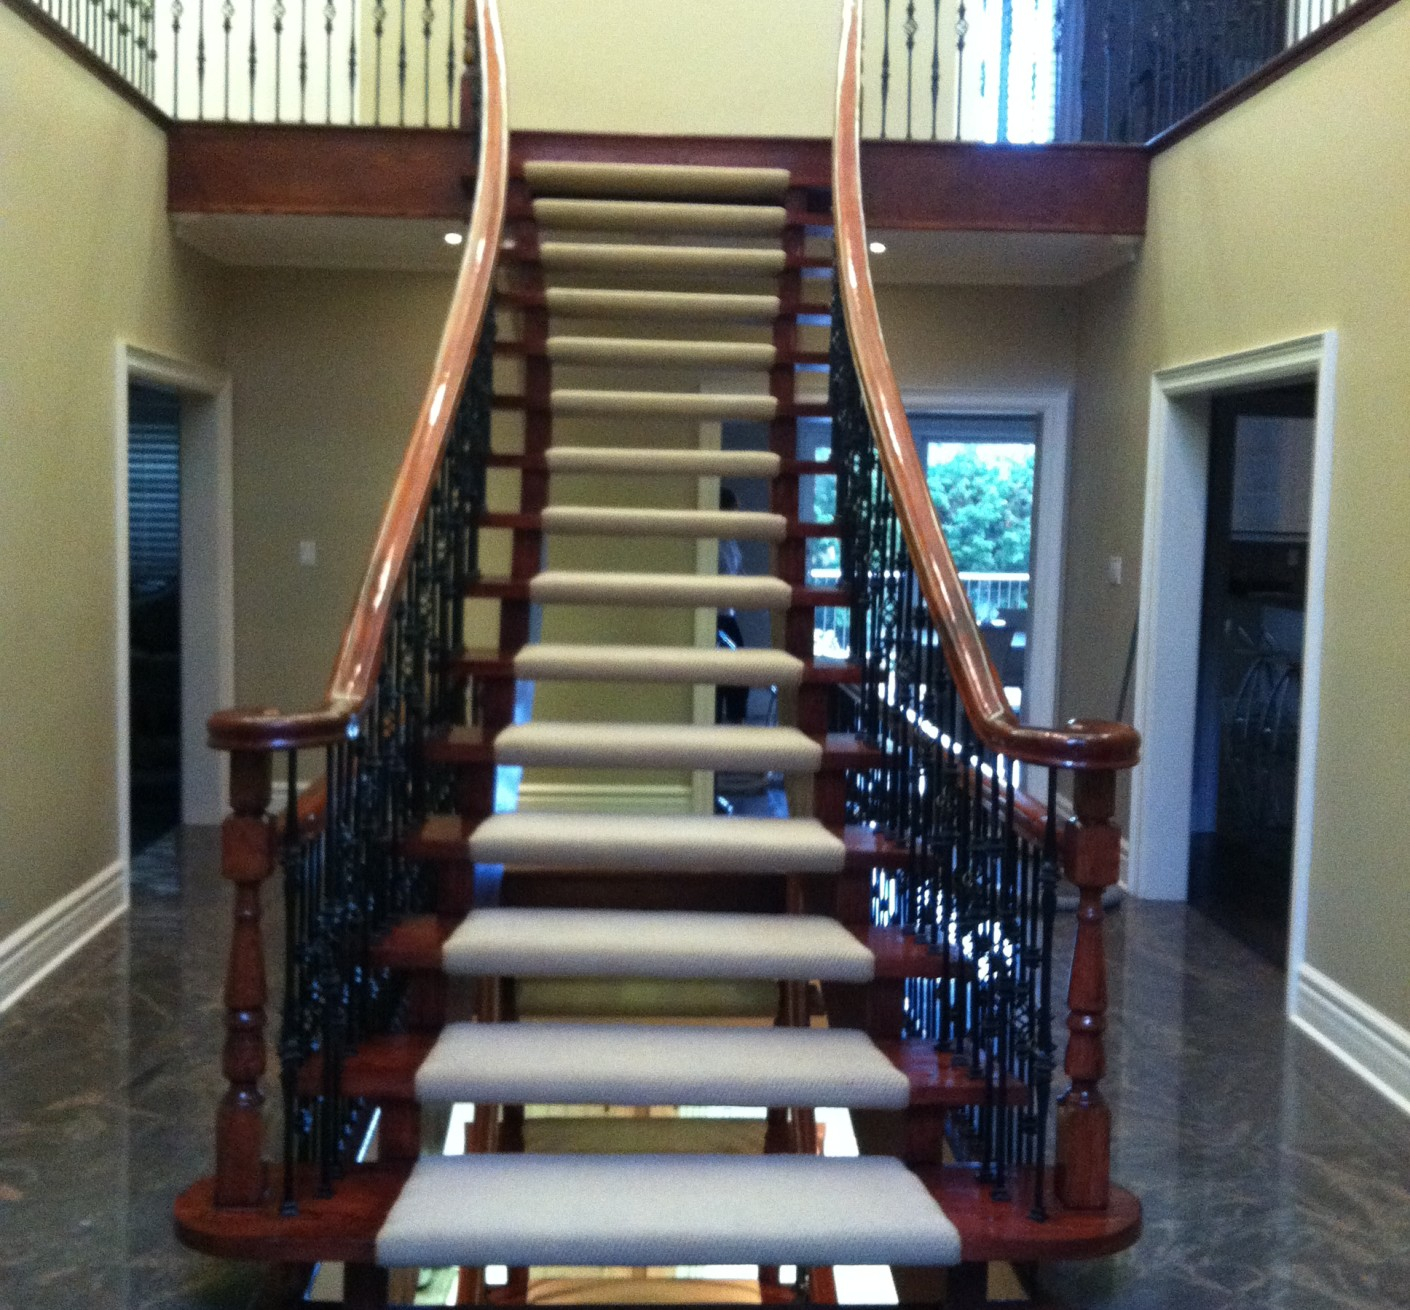 Refinishing Floating Staircase, Railing and add new iron rod pickets